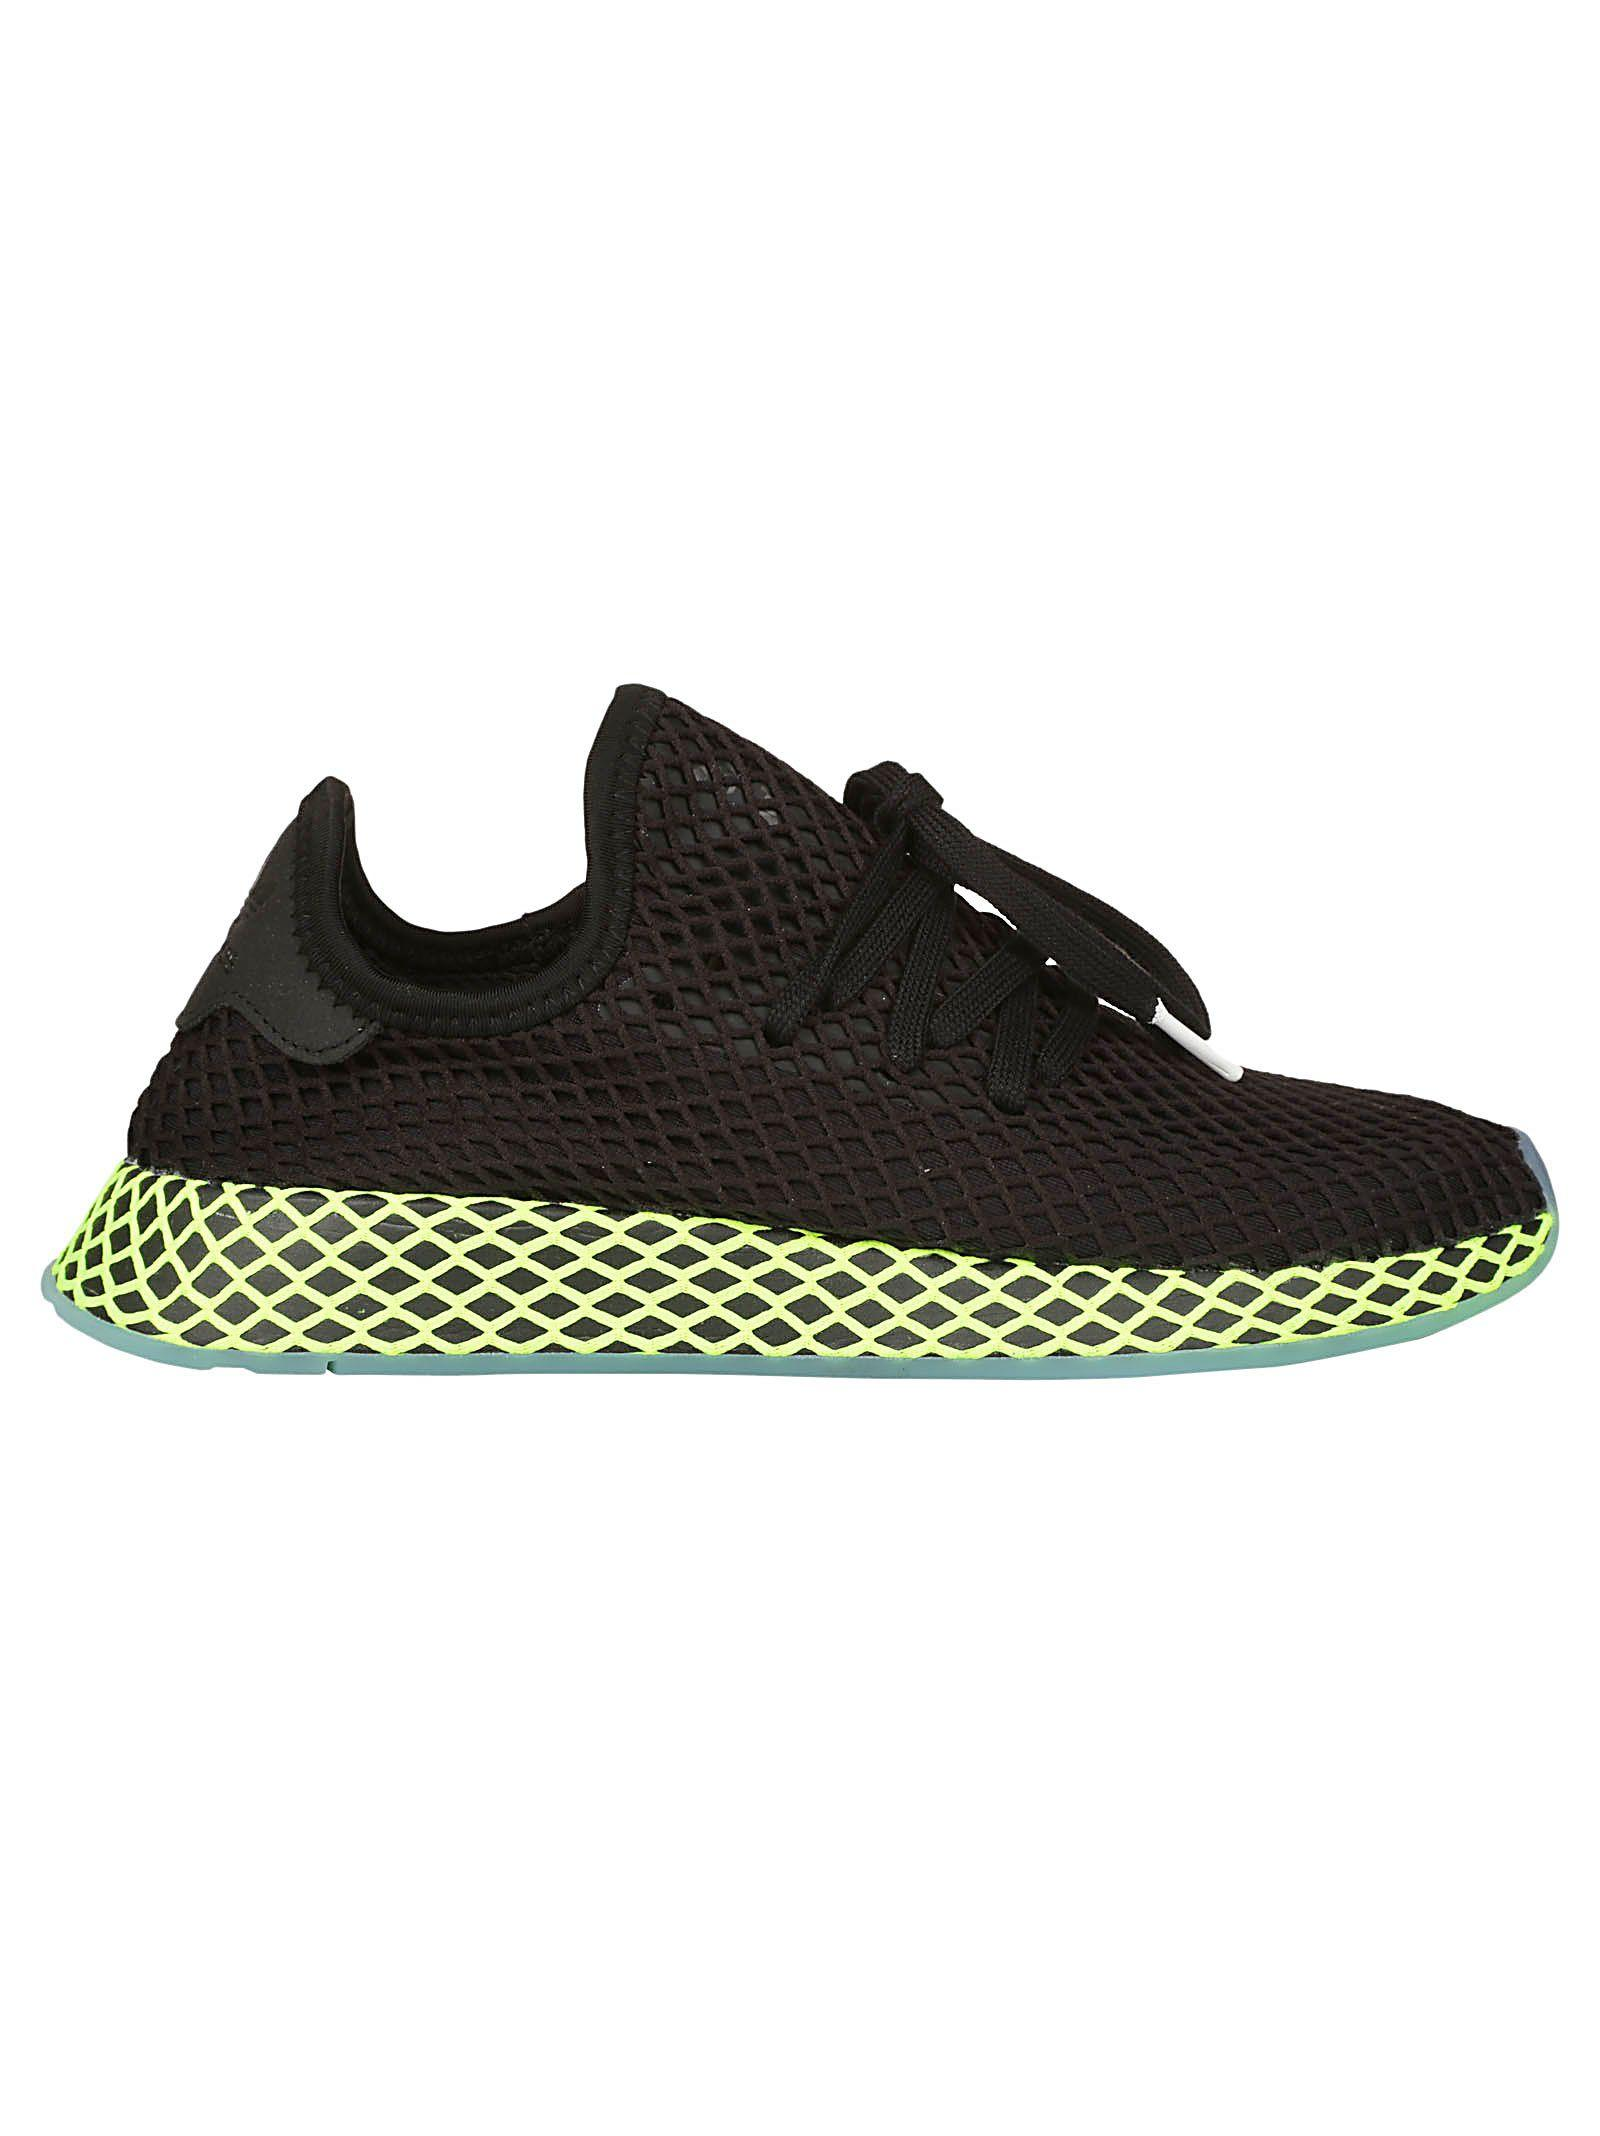 official photos c74c5 f0bcd Adidas Originals Adidas Black And Green Deerupt Runner Sneakers